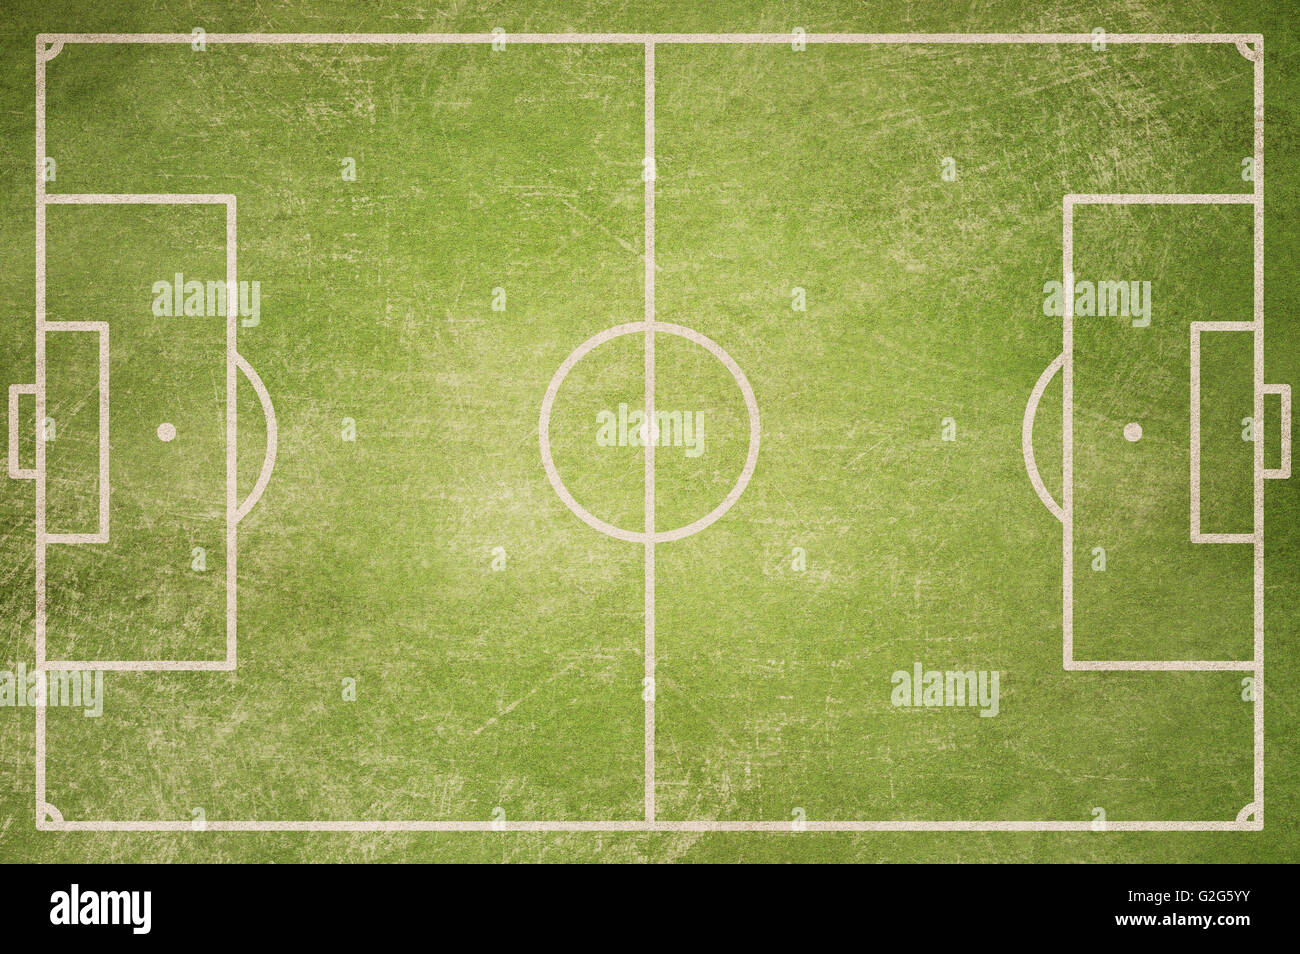 Soccer Field Top View Grunge Background Stock Photo